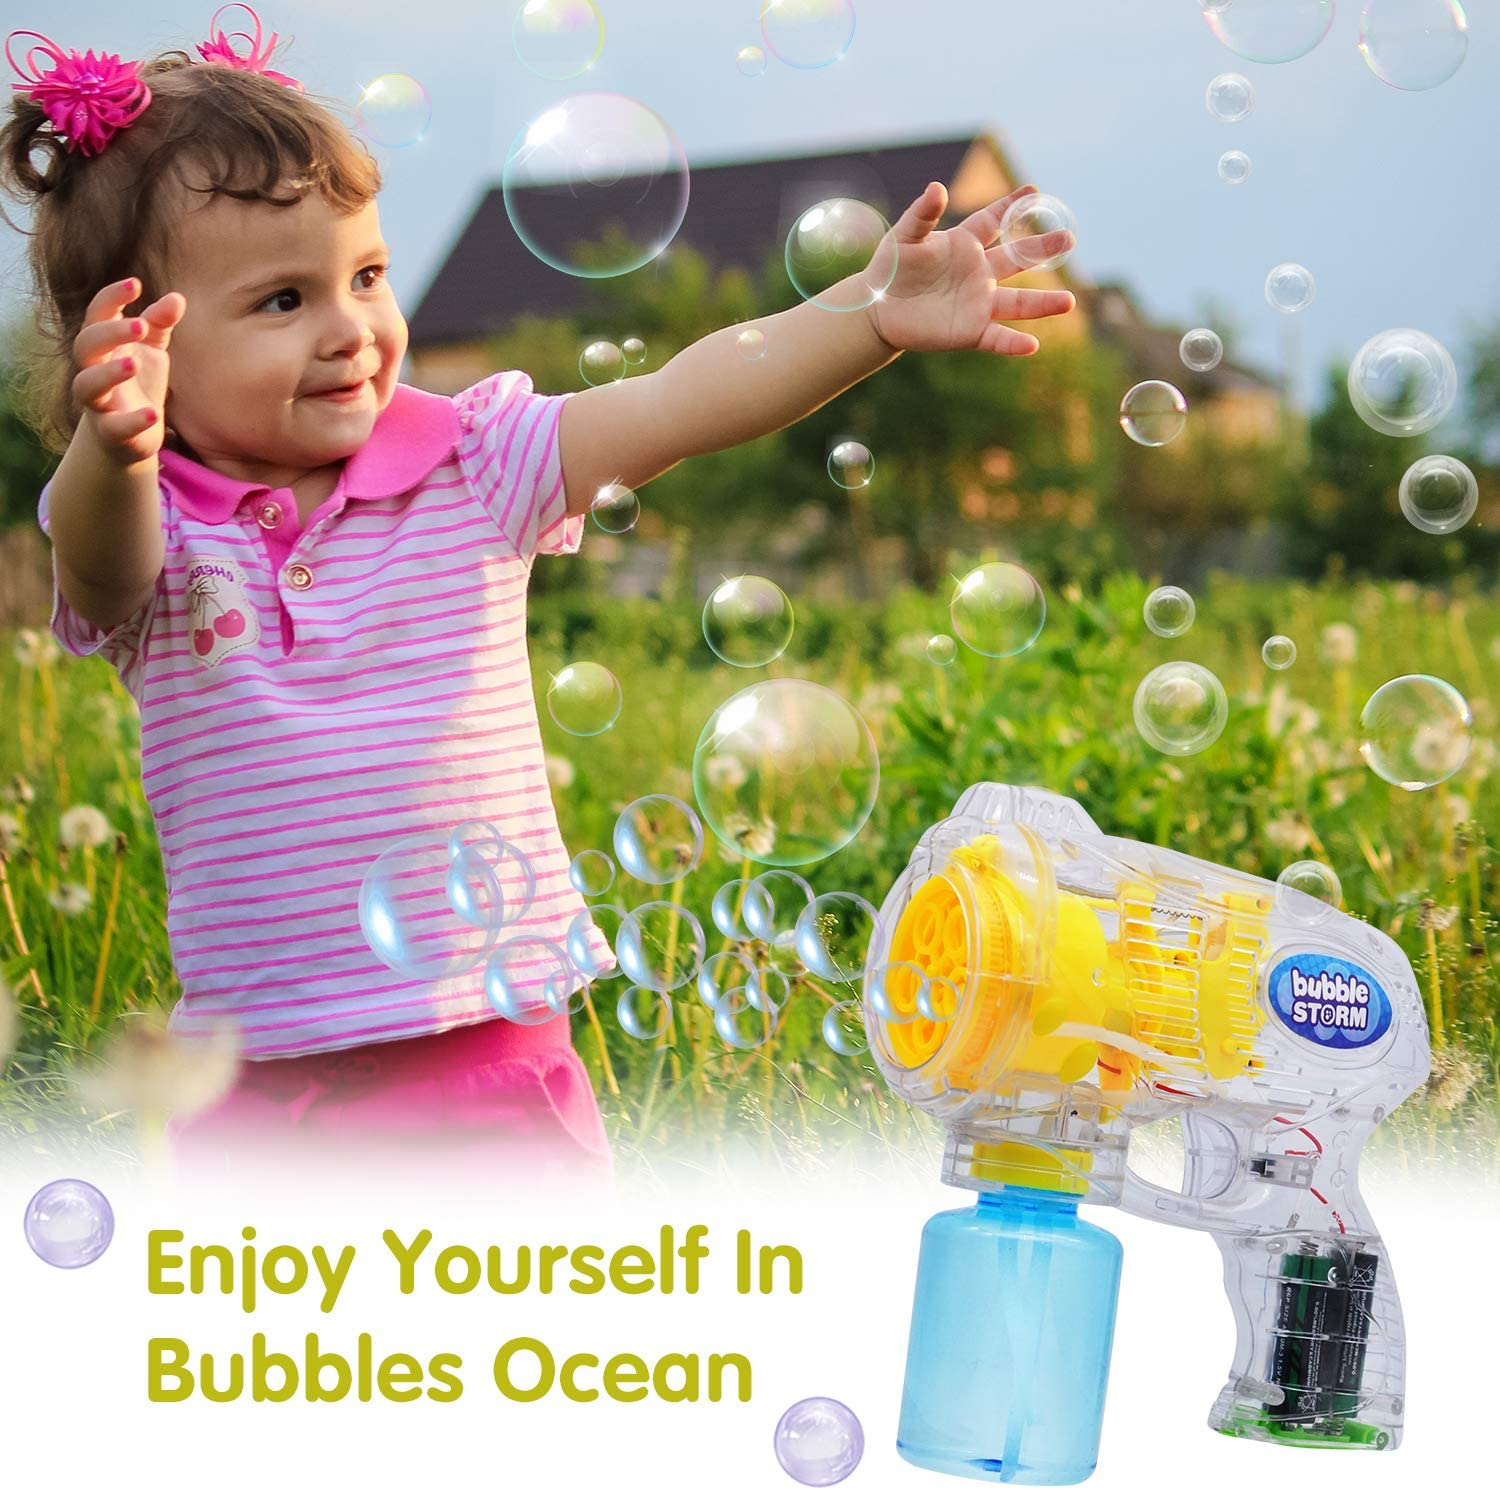 Birthday Summer Toy Outdoor /& Indoor Activity Easter Bubble Blower for Bubble Party Favors JOYIN 3 Bubble Guns Blaster Kit Automatic Bubble Maker Blower Machine with 3 Bubble Solutions for Kids